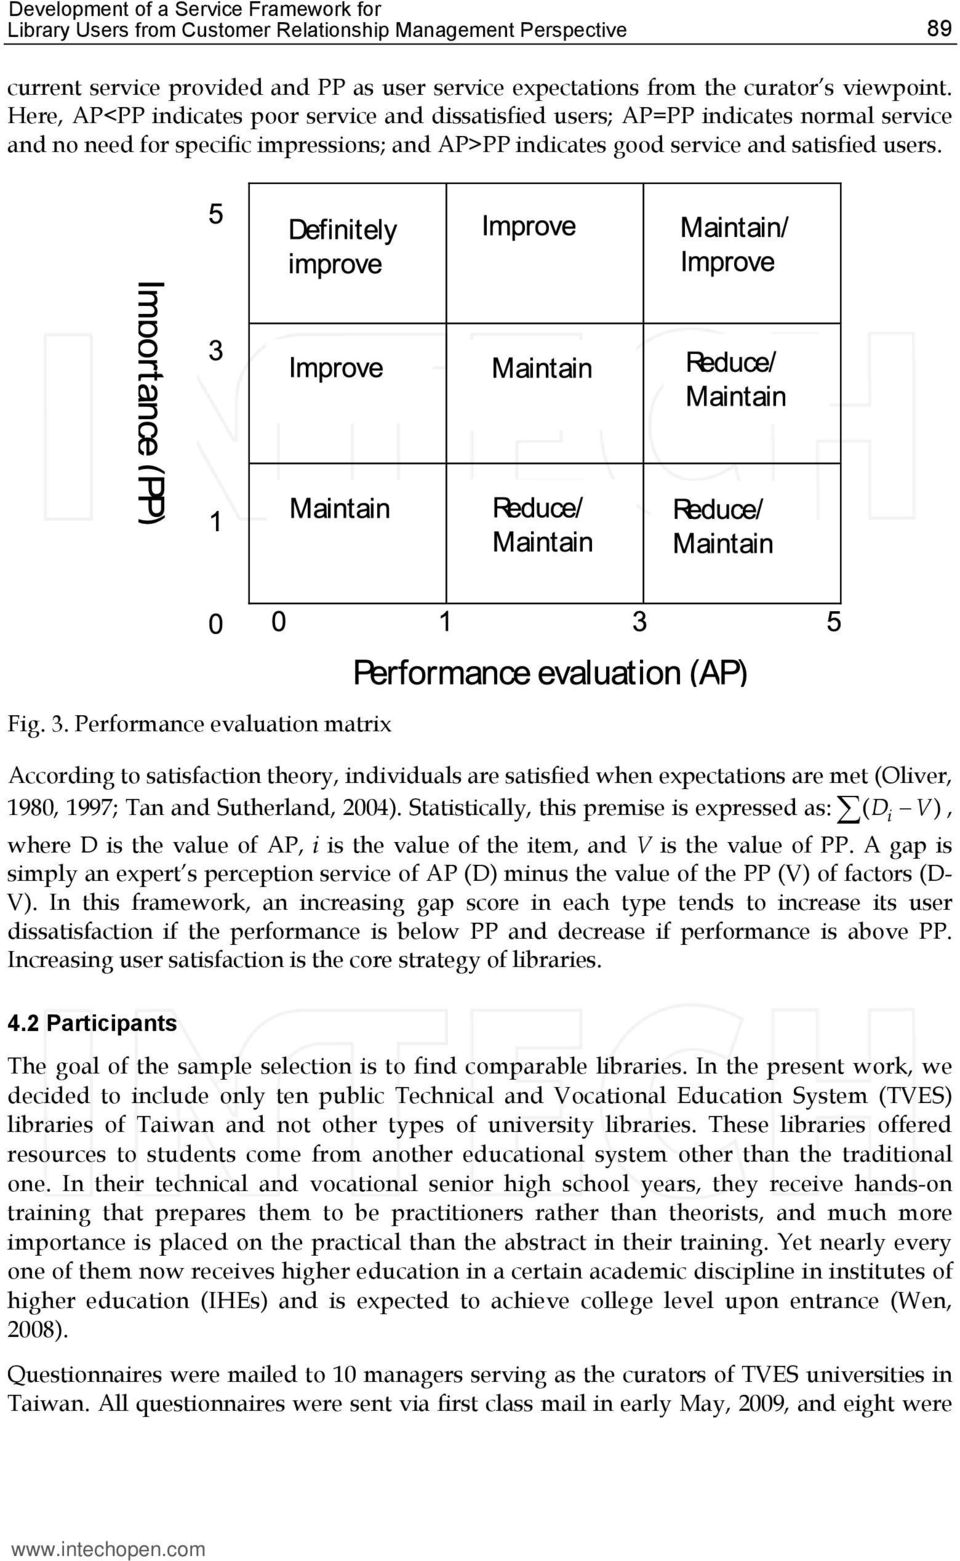 Performance evaluation matrix According to satisfaction theory, individuals are satisfied when expectations are met (Oliver, 1980, 1997; Tan and Sutherland, 2004).